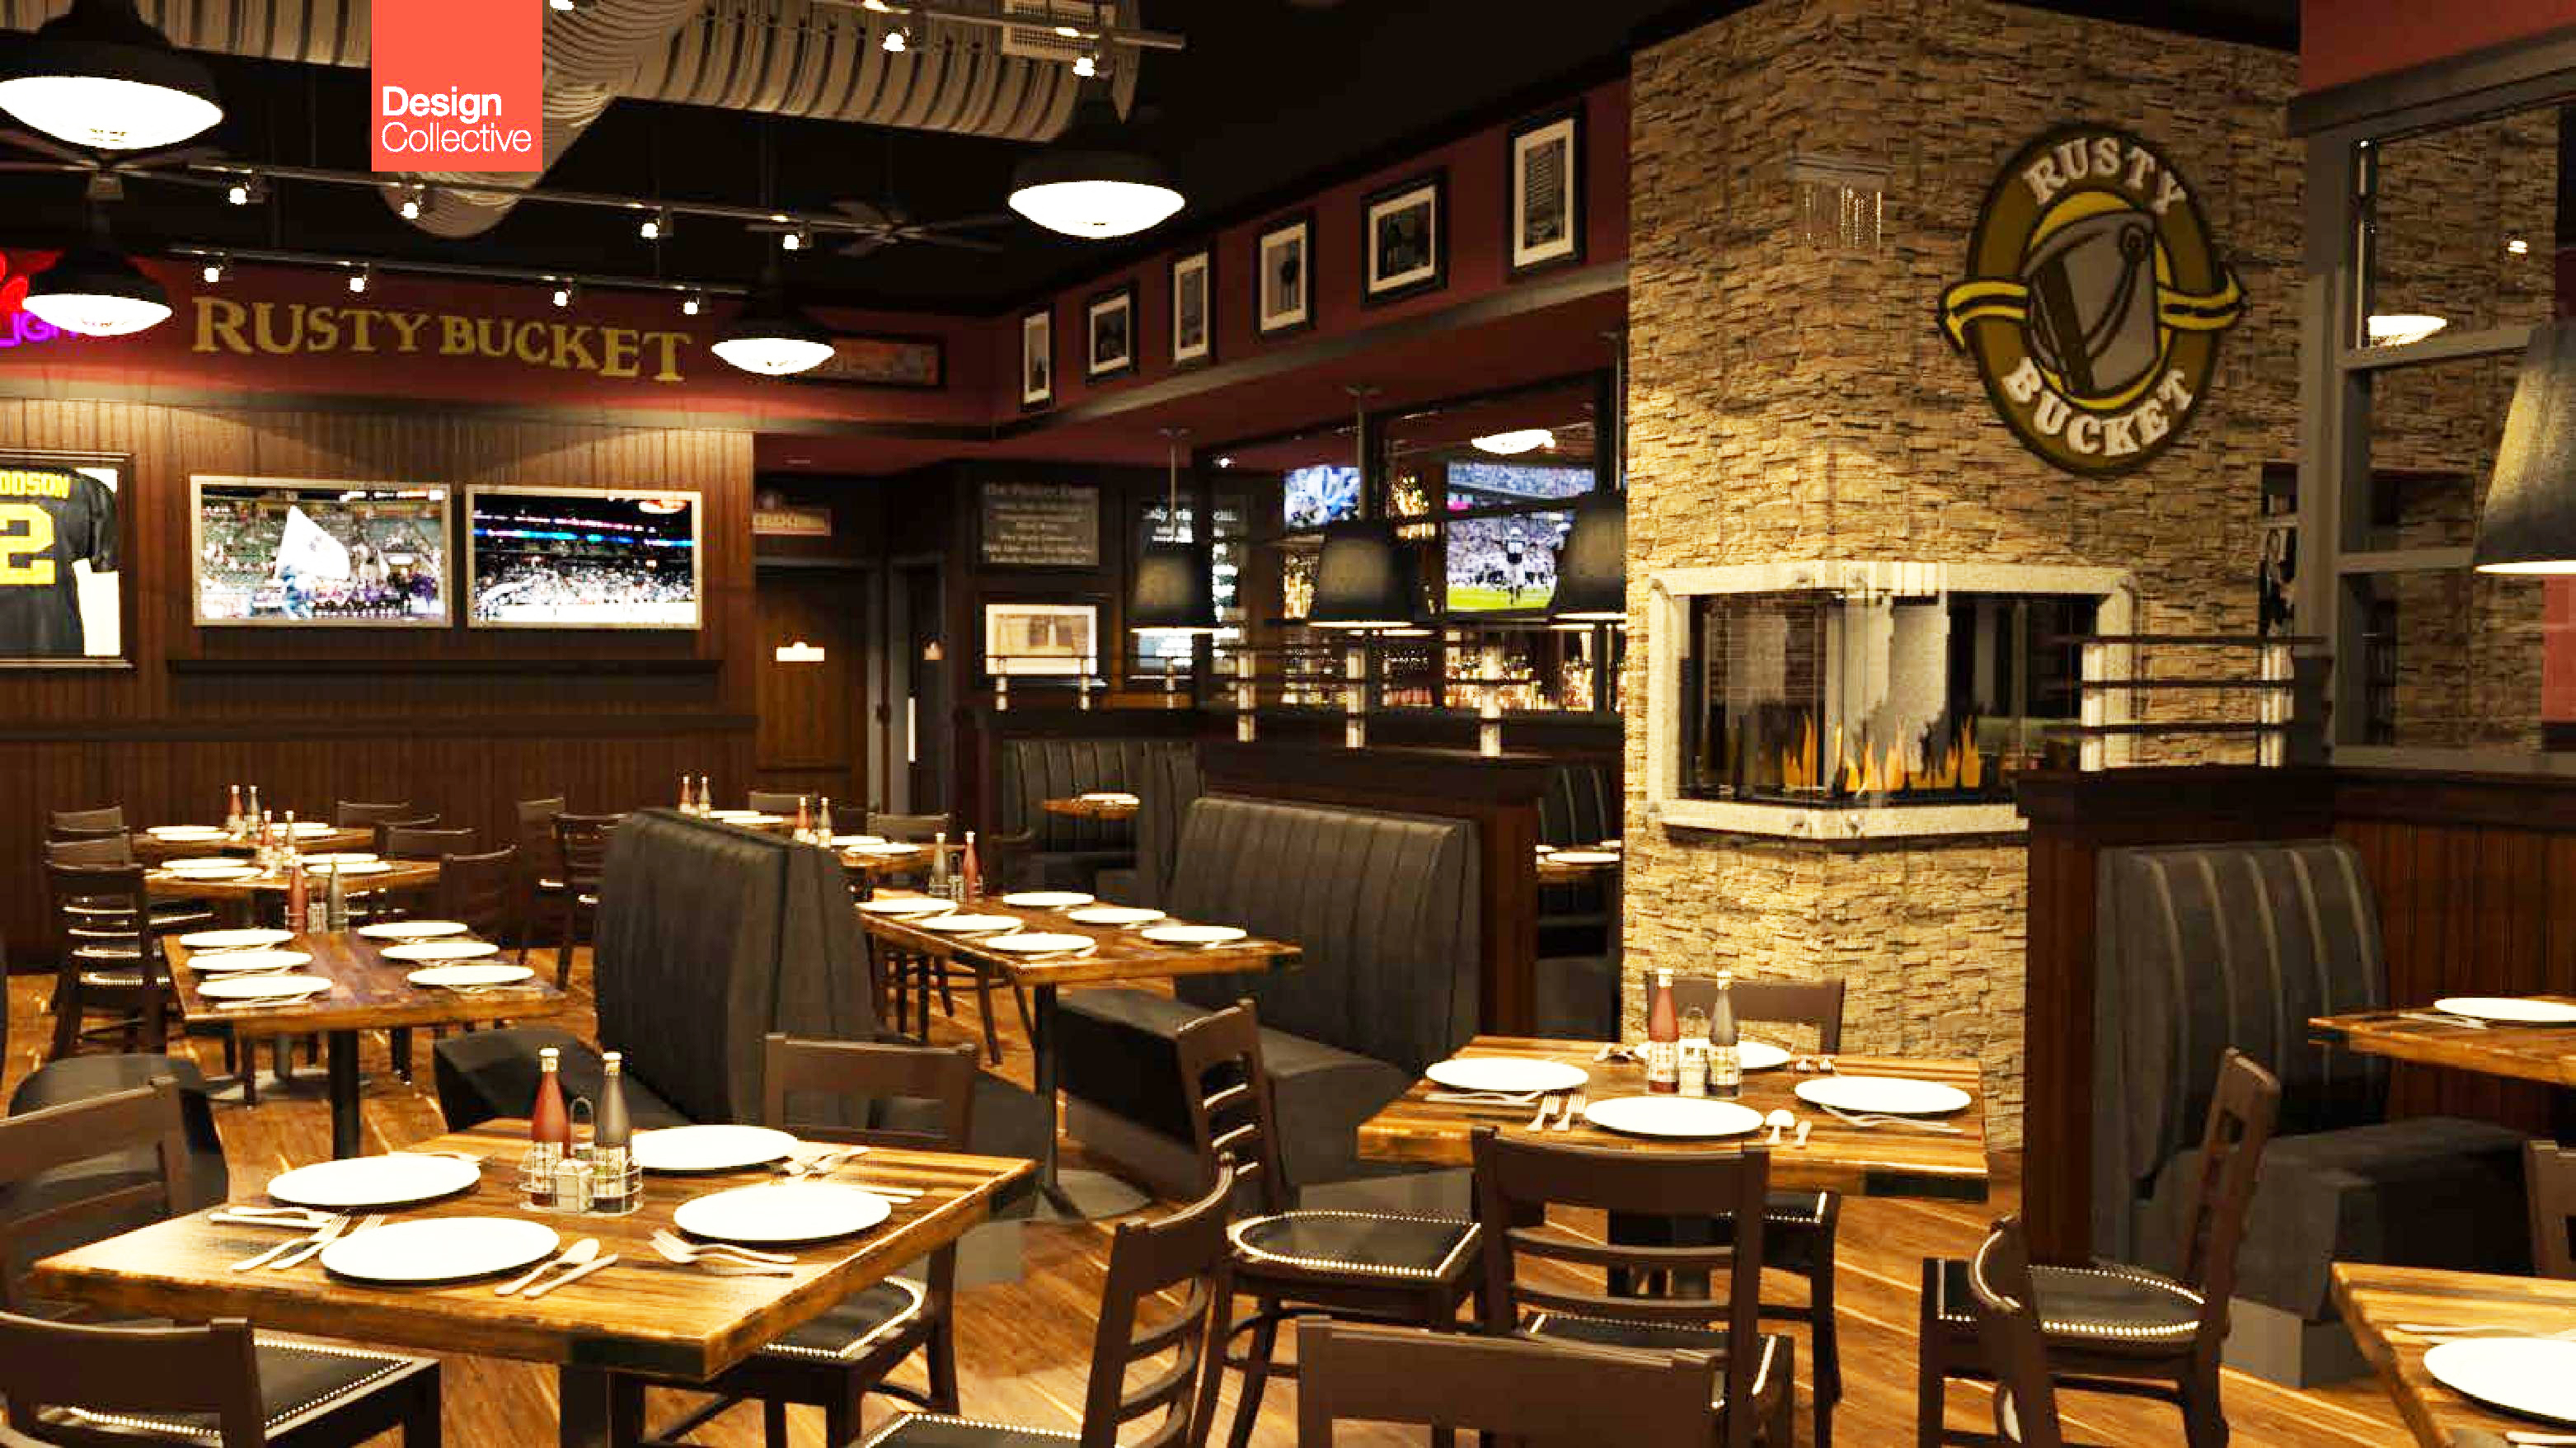 Rusty Bucket Restaurant And Tavern Plans Significant Growth In 2015